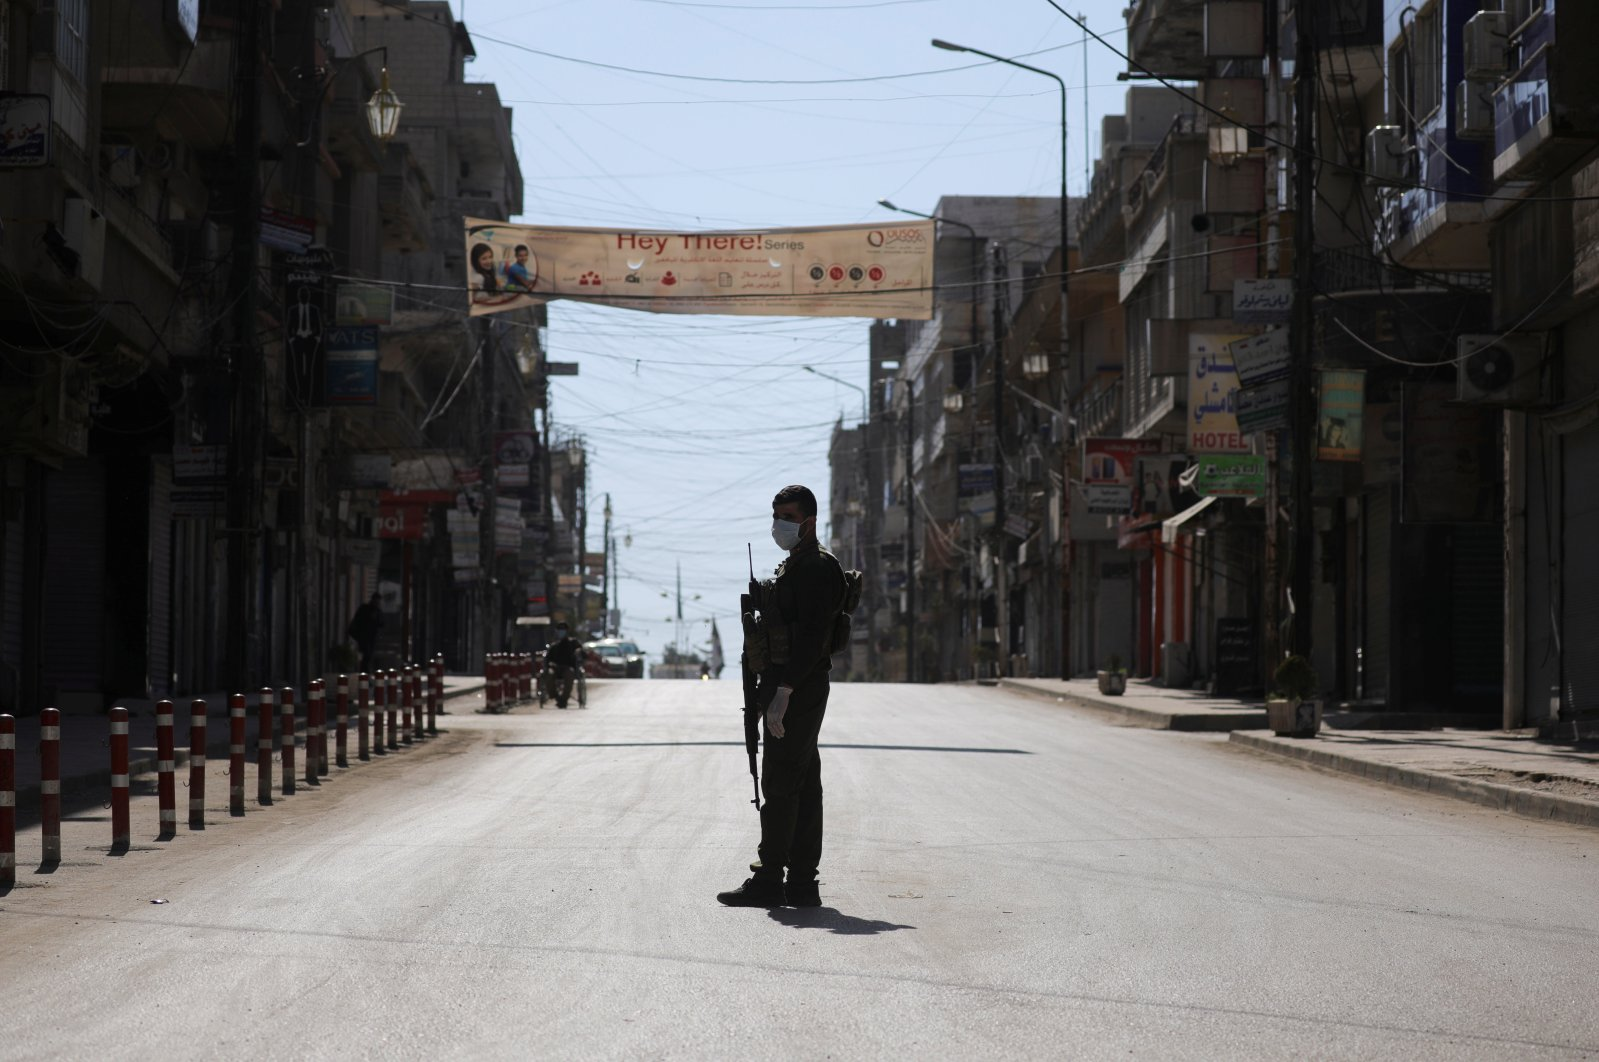 A YPG/PKK member stands near closed shops along an empty street as restrictions are imposed as a measure to prevent the spread of the coronavirus in Qamishli, Syria, March 23, 2020. (Reuters Photo)